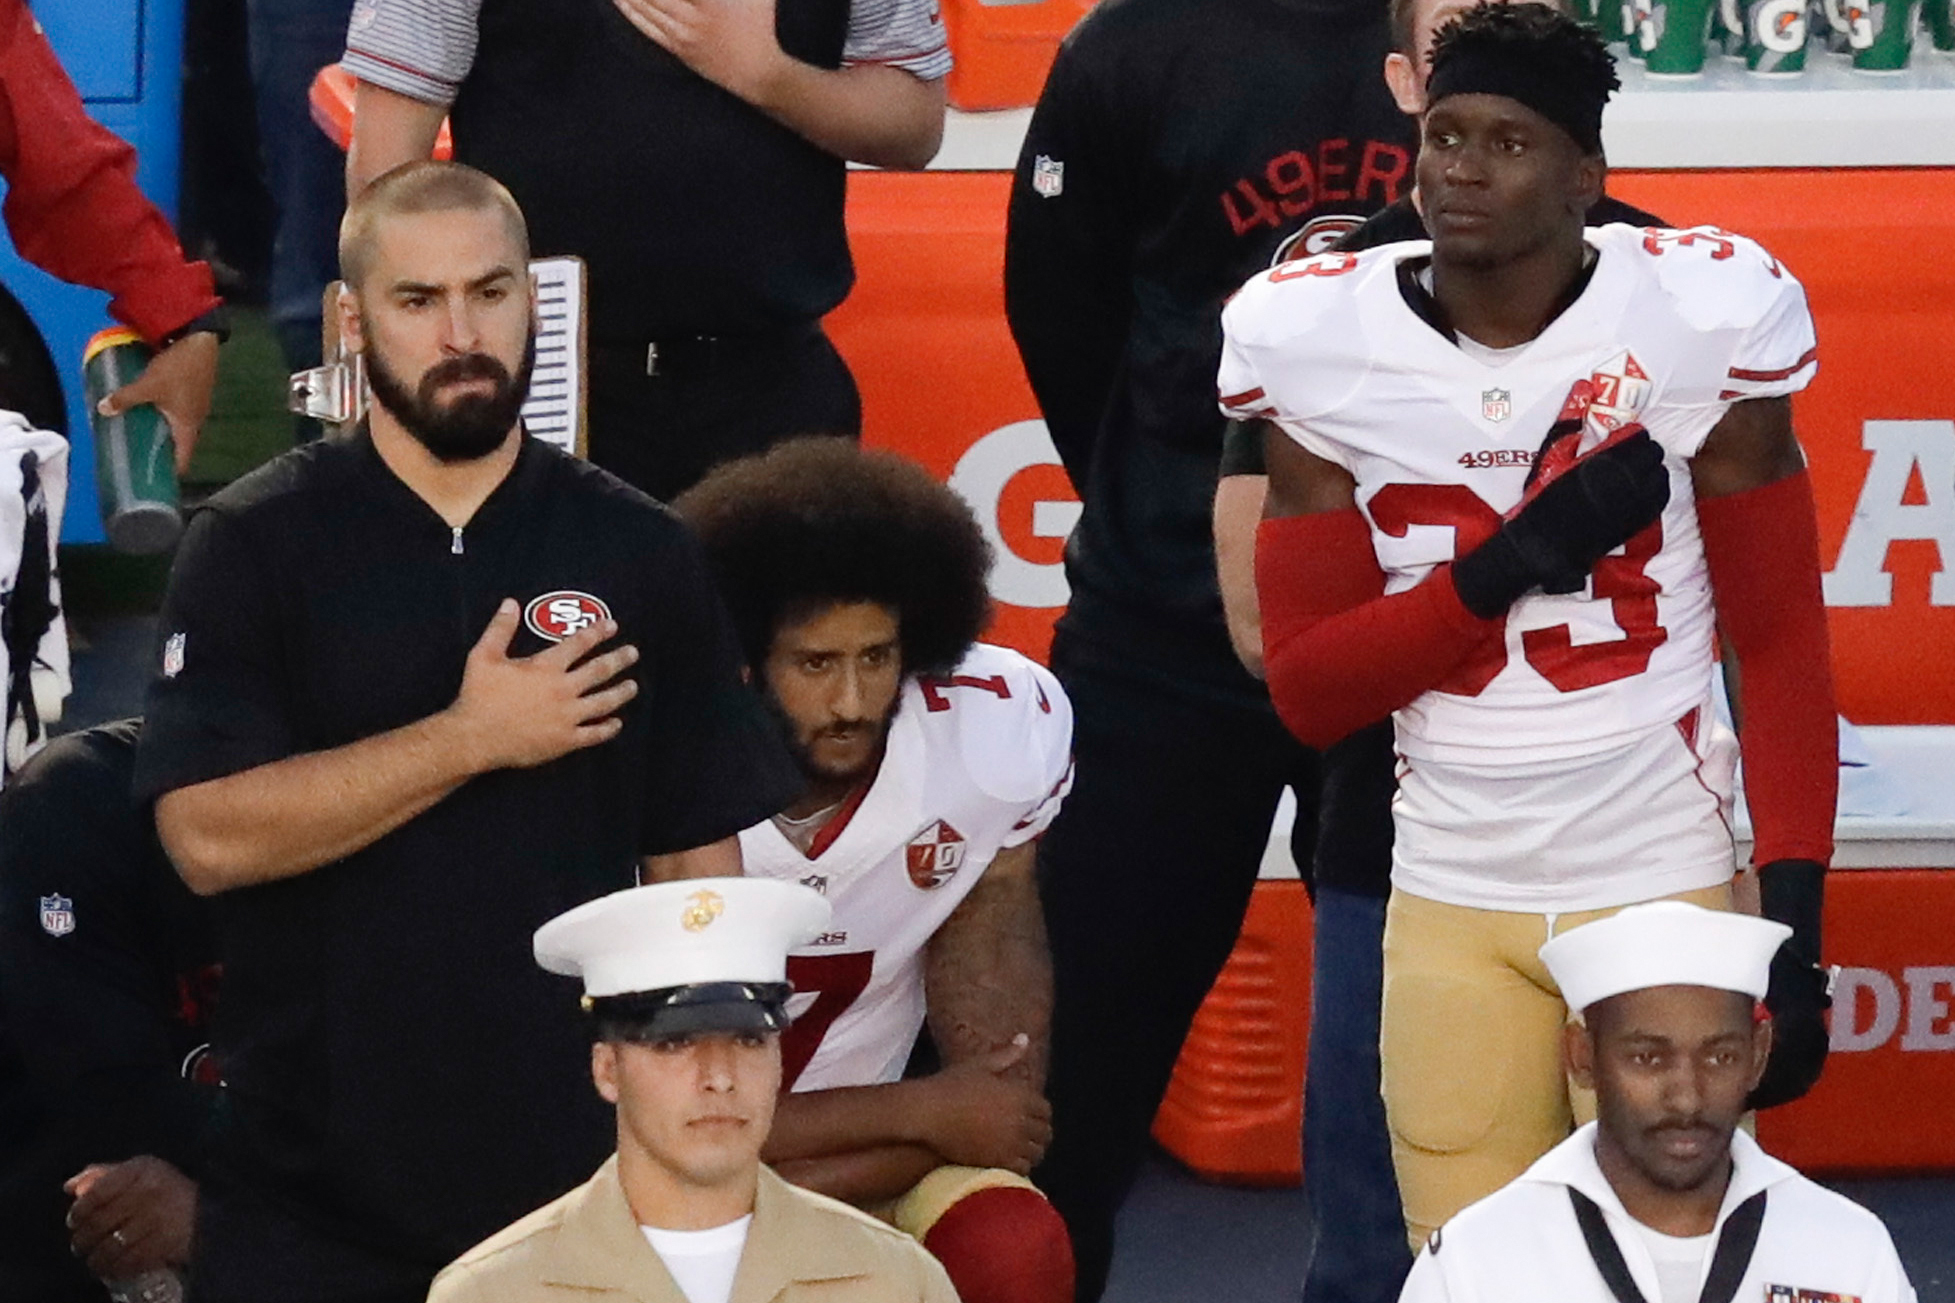 San Francisco 49ers quarterback Colin Kaepernick (C) kneels during the  national anthem before the team s NFL preseason football game against the  San Diego ... d0896748c